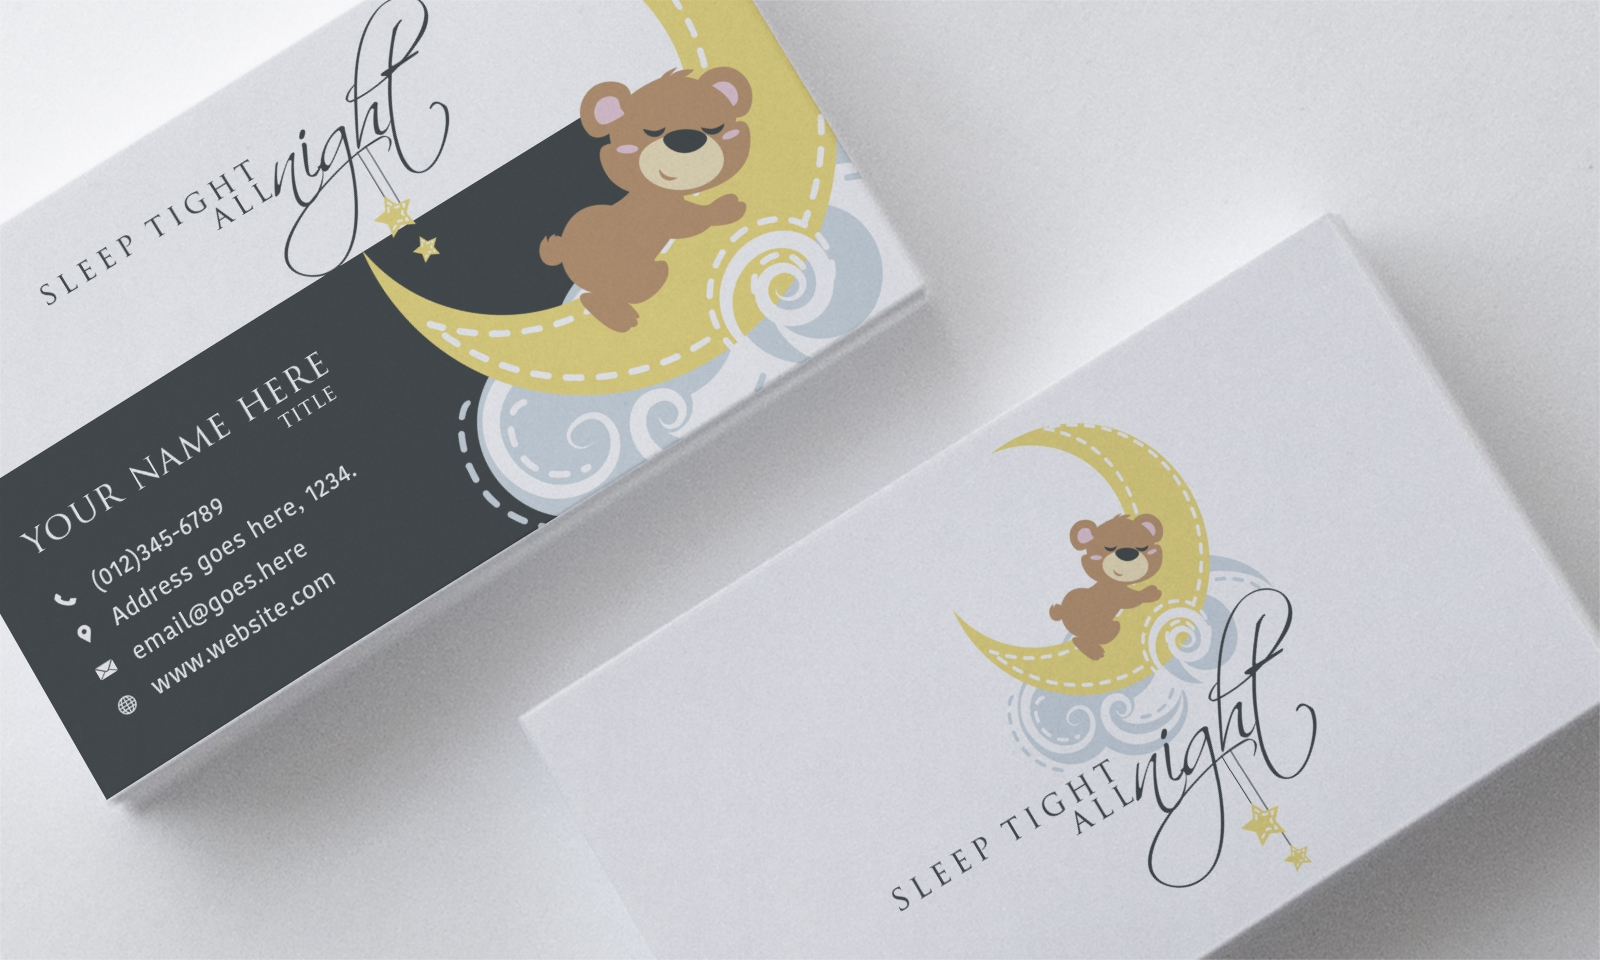 Logo and stationery designs done for a sleep consultant for babies/toddlers